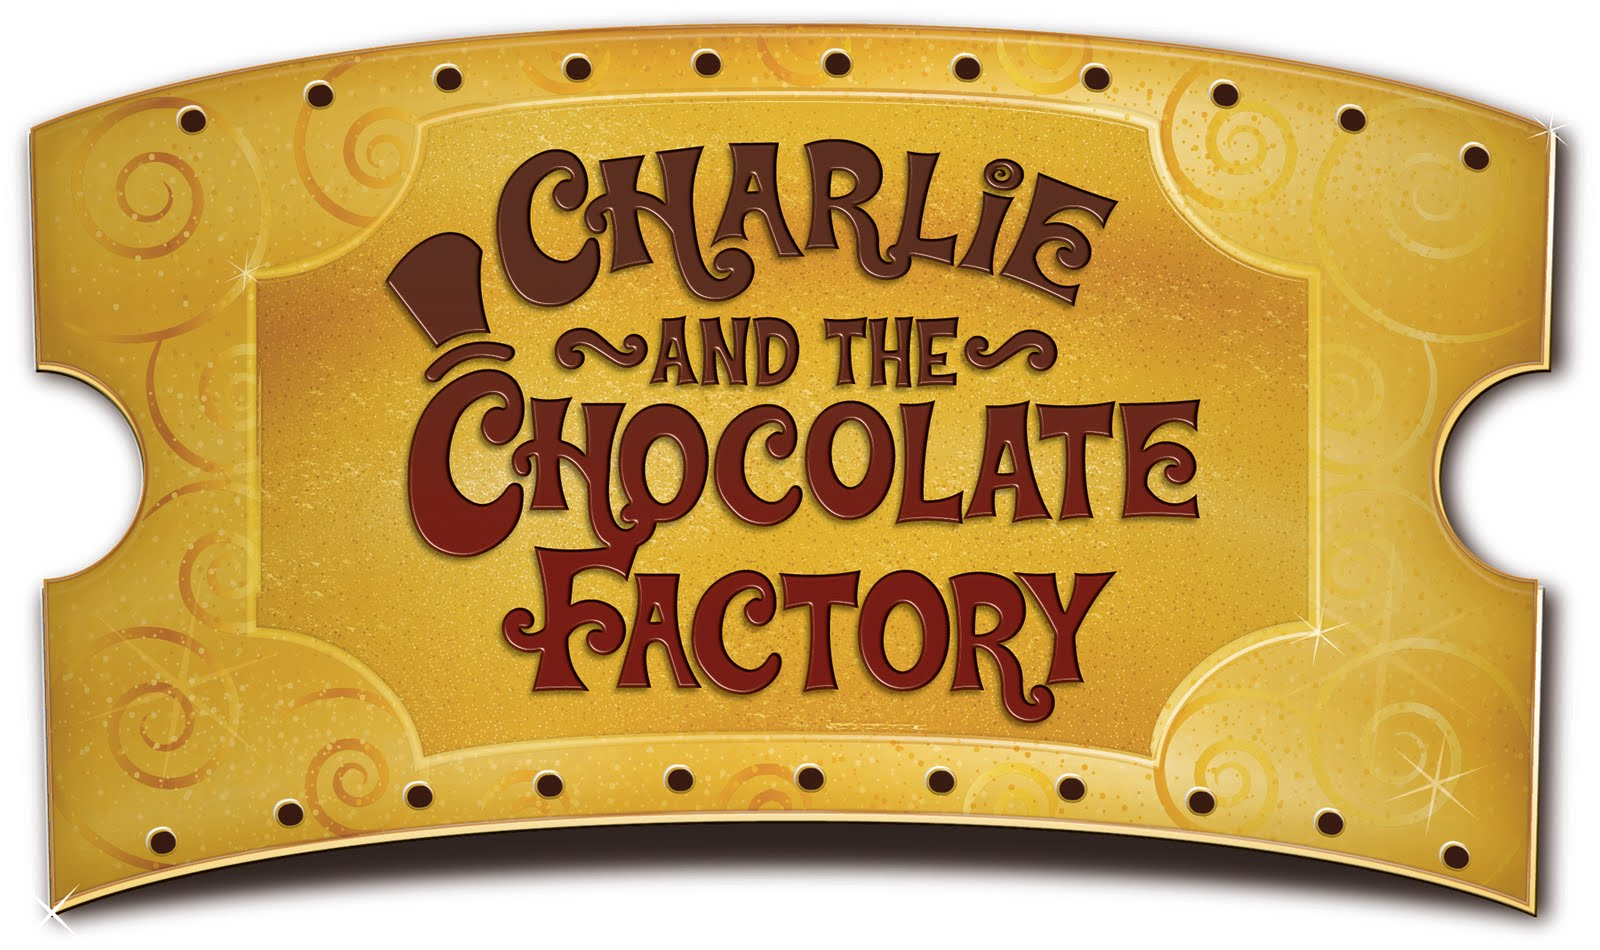 17 best images about charlie and the chocolate factory on 17 best images about charlie and the chocolate factory party table centerpieces candy canes and birthday party ideas